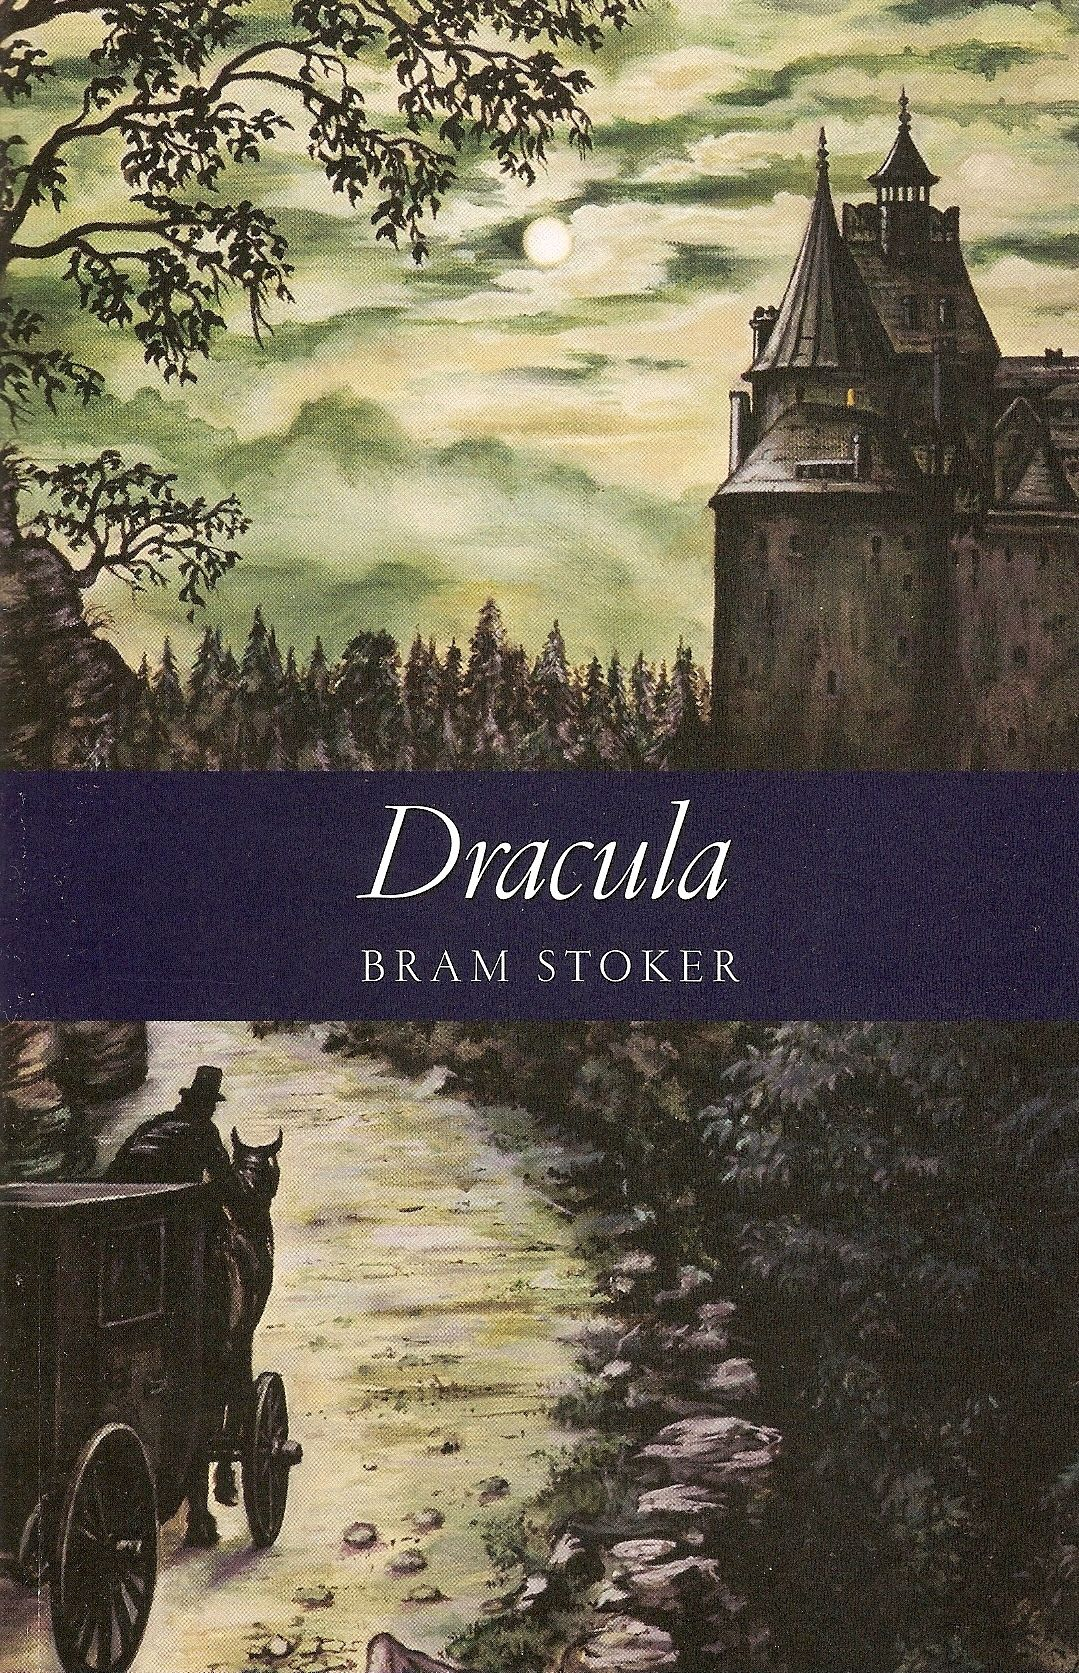 best images about bram stoker s dracula book cover designs on 17 best images about bram stoker s dracula book cover designs classic books novels and bram stoker s dracula